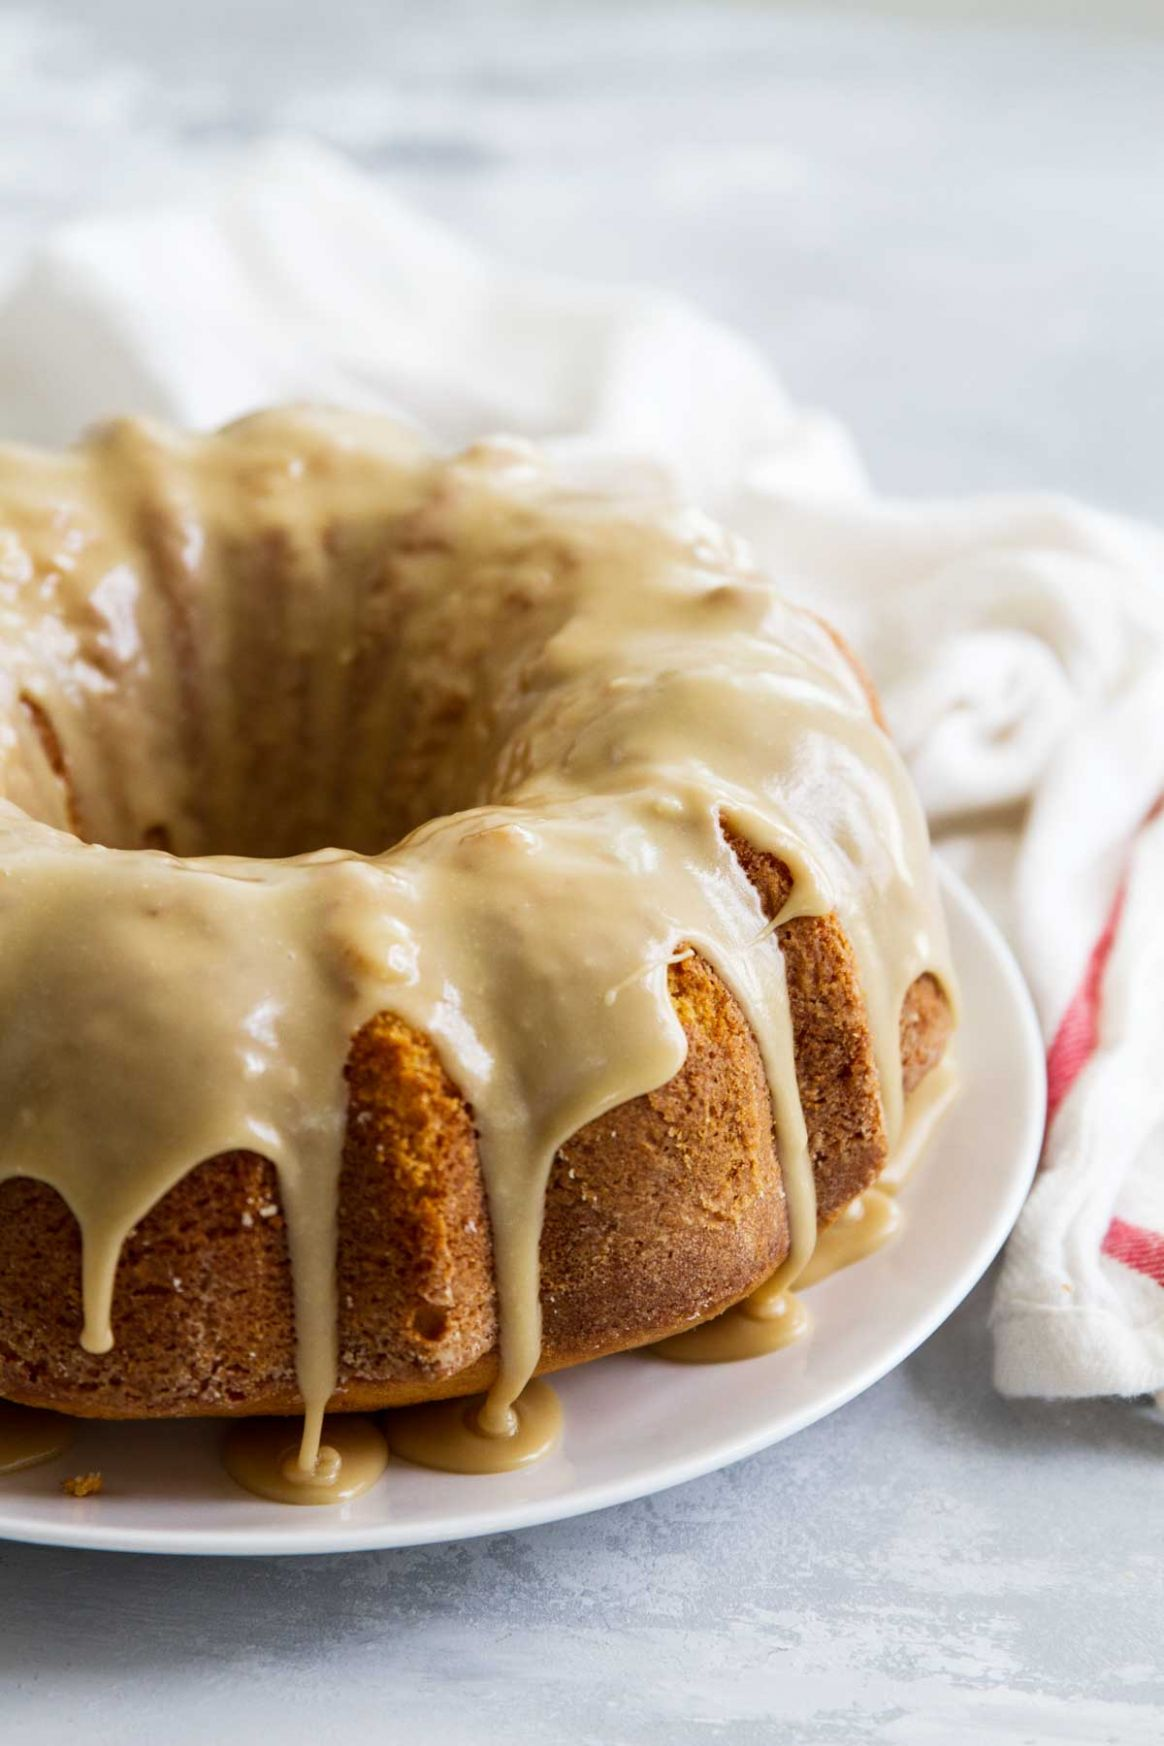 Buttermilk Pound Cake with Caramel Icing - Cake Recipes Using Buttermilk